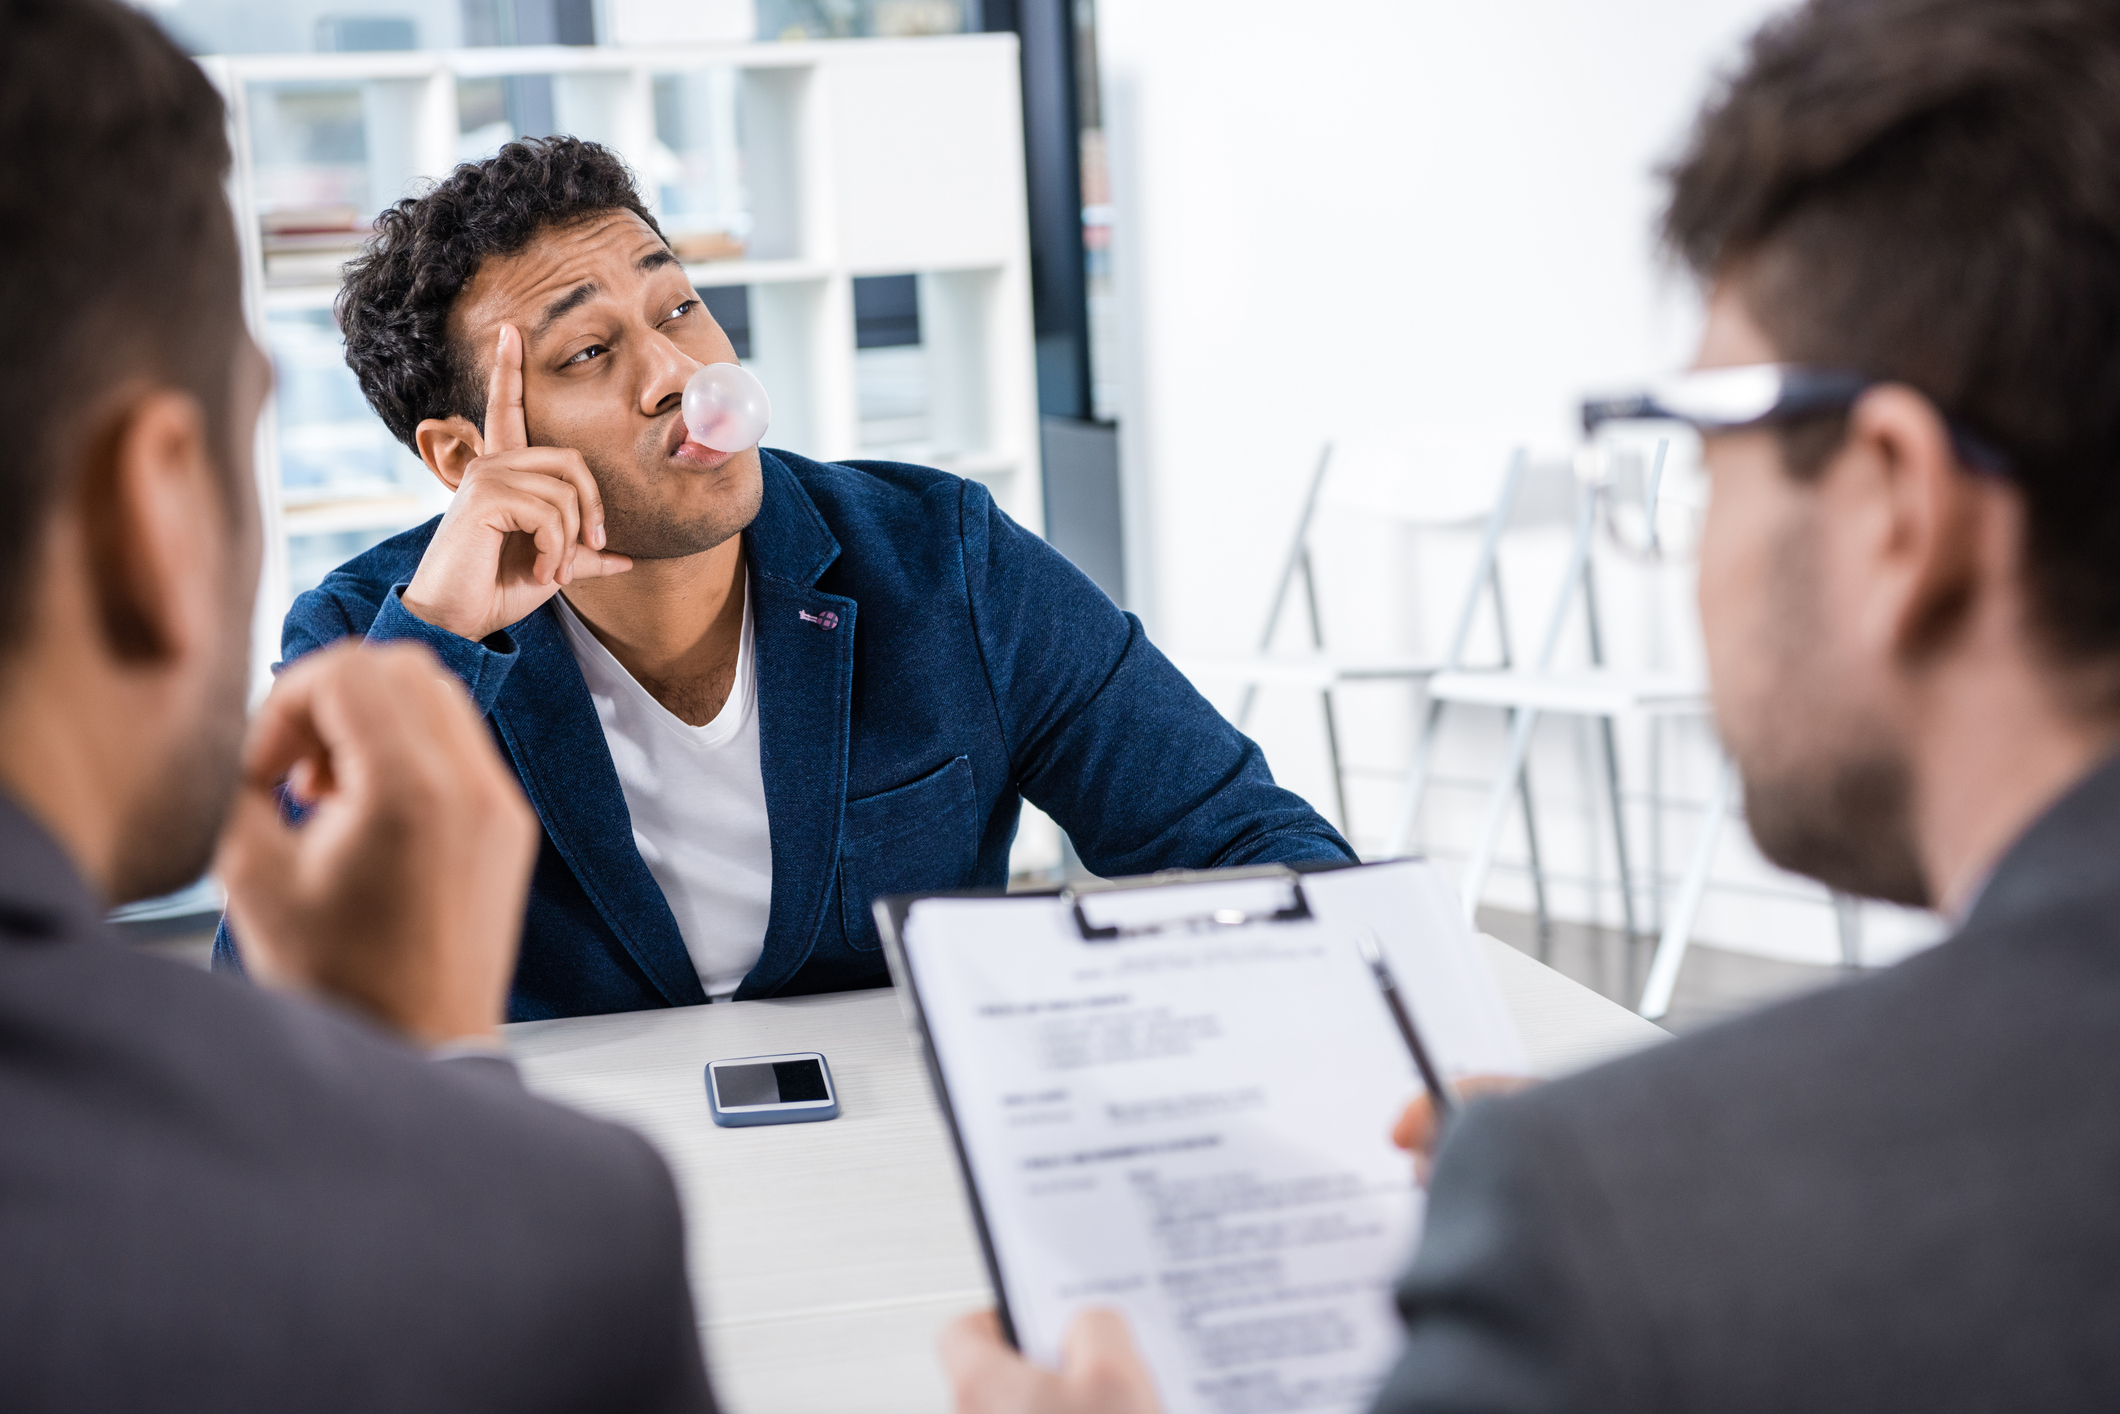 Interview And Body Language Mistakes That Can Cost You The Job